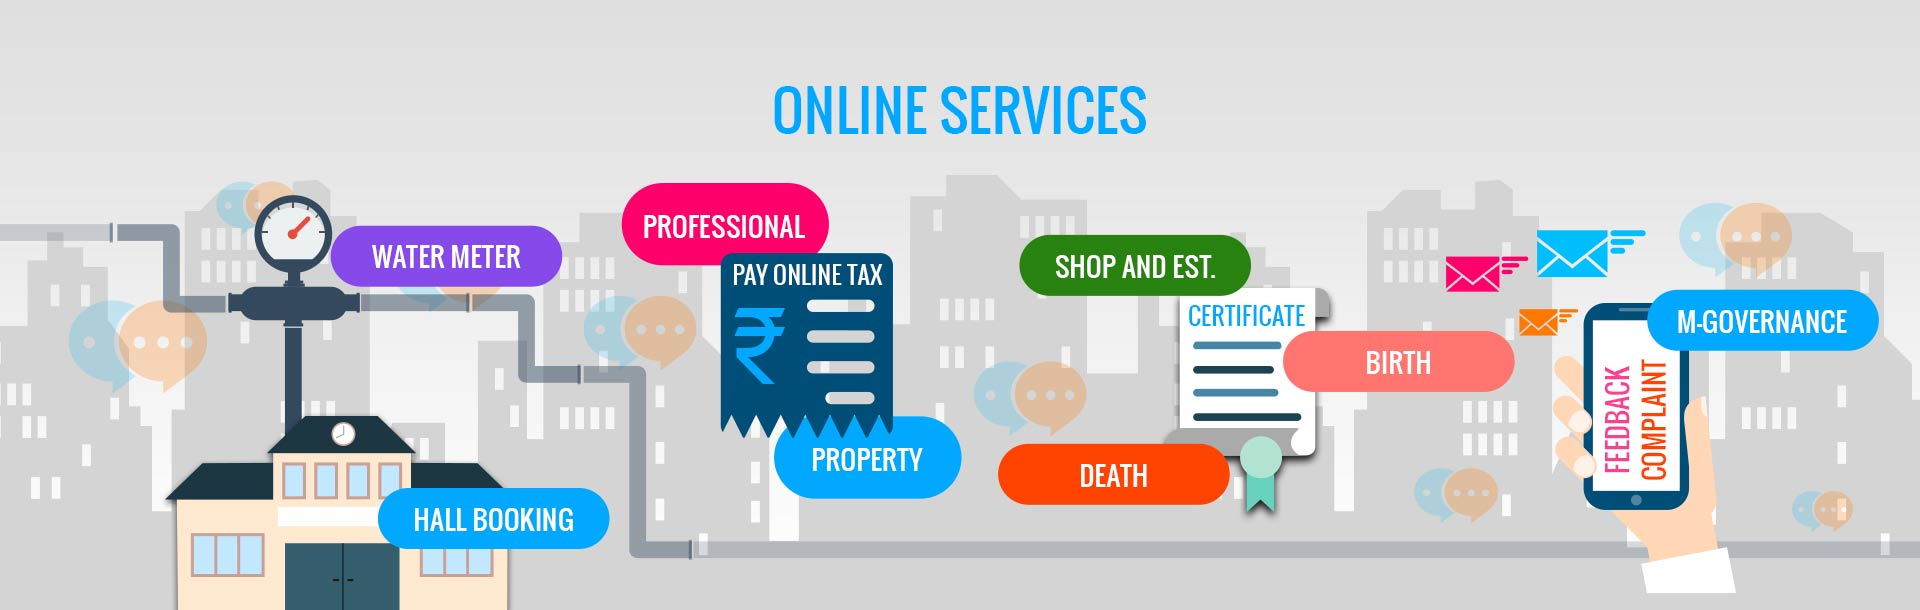 Online Services for citizen